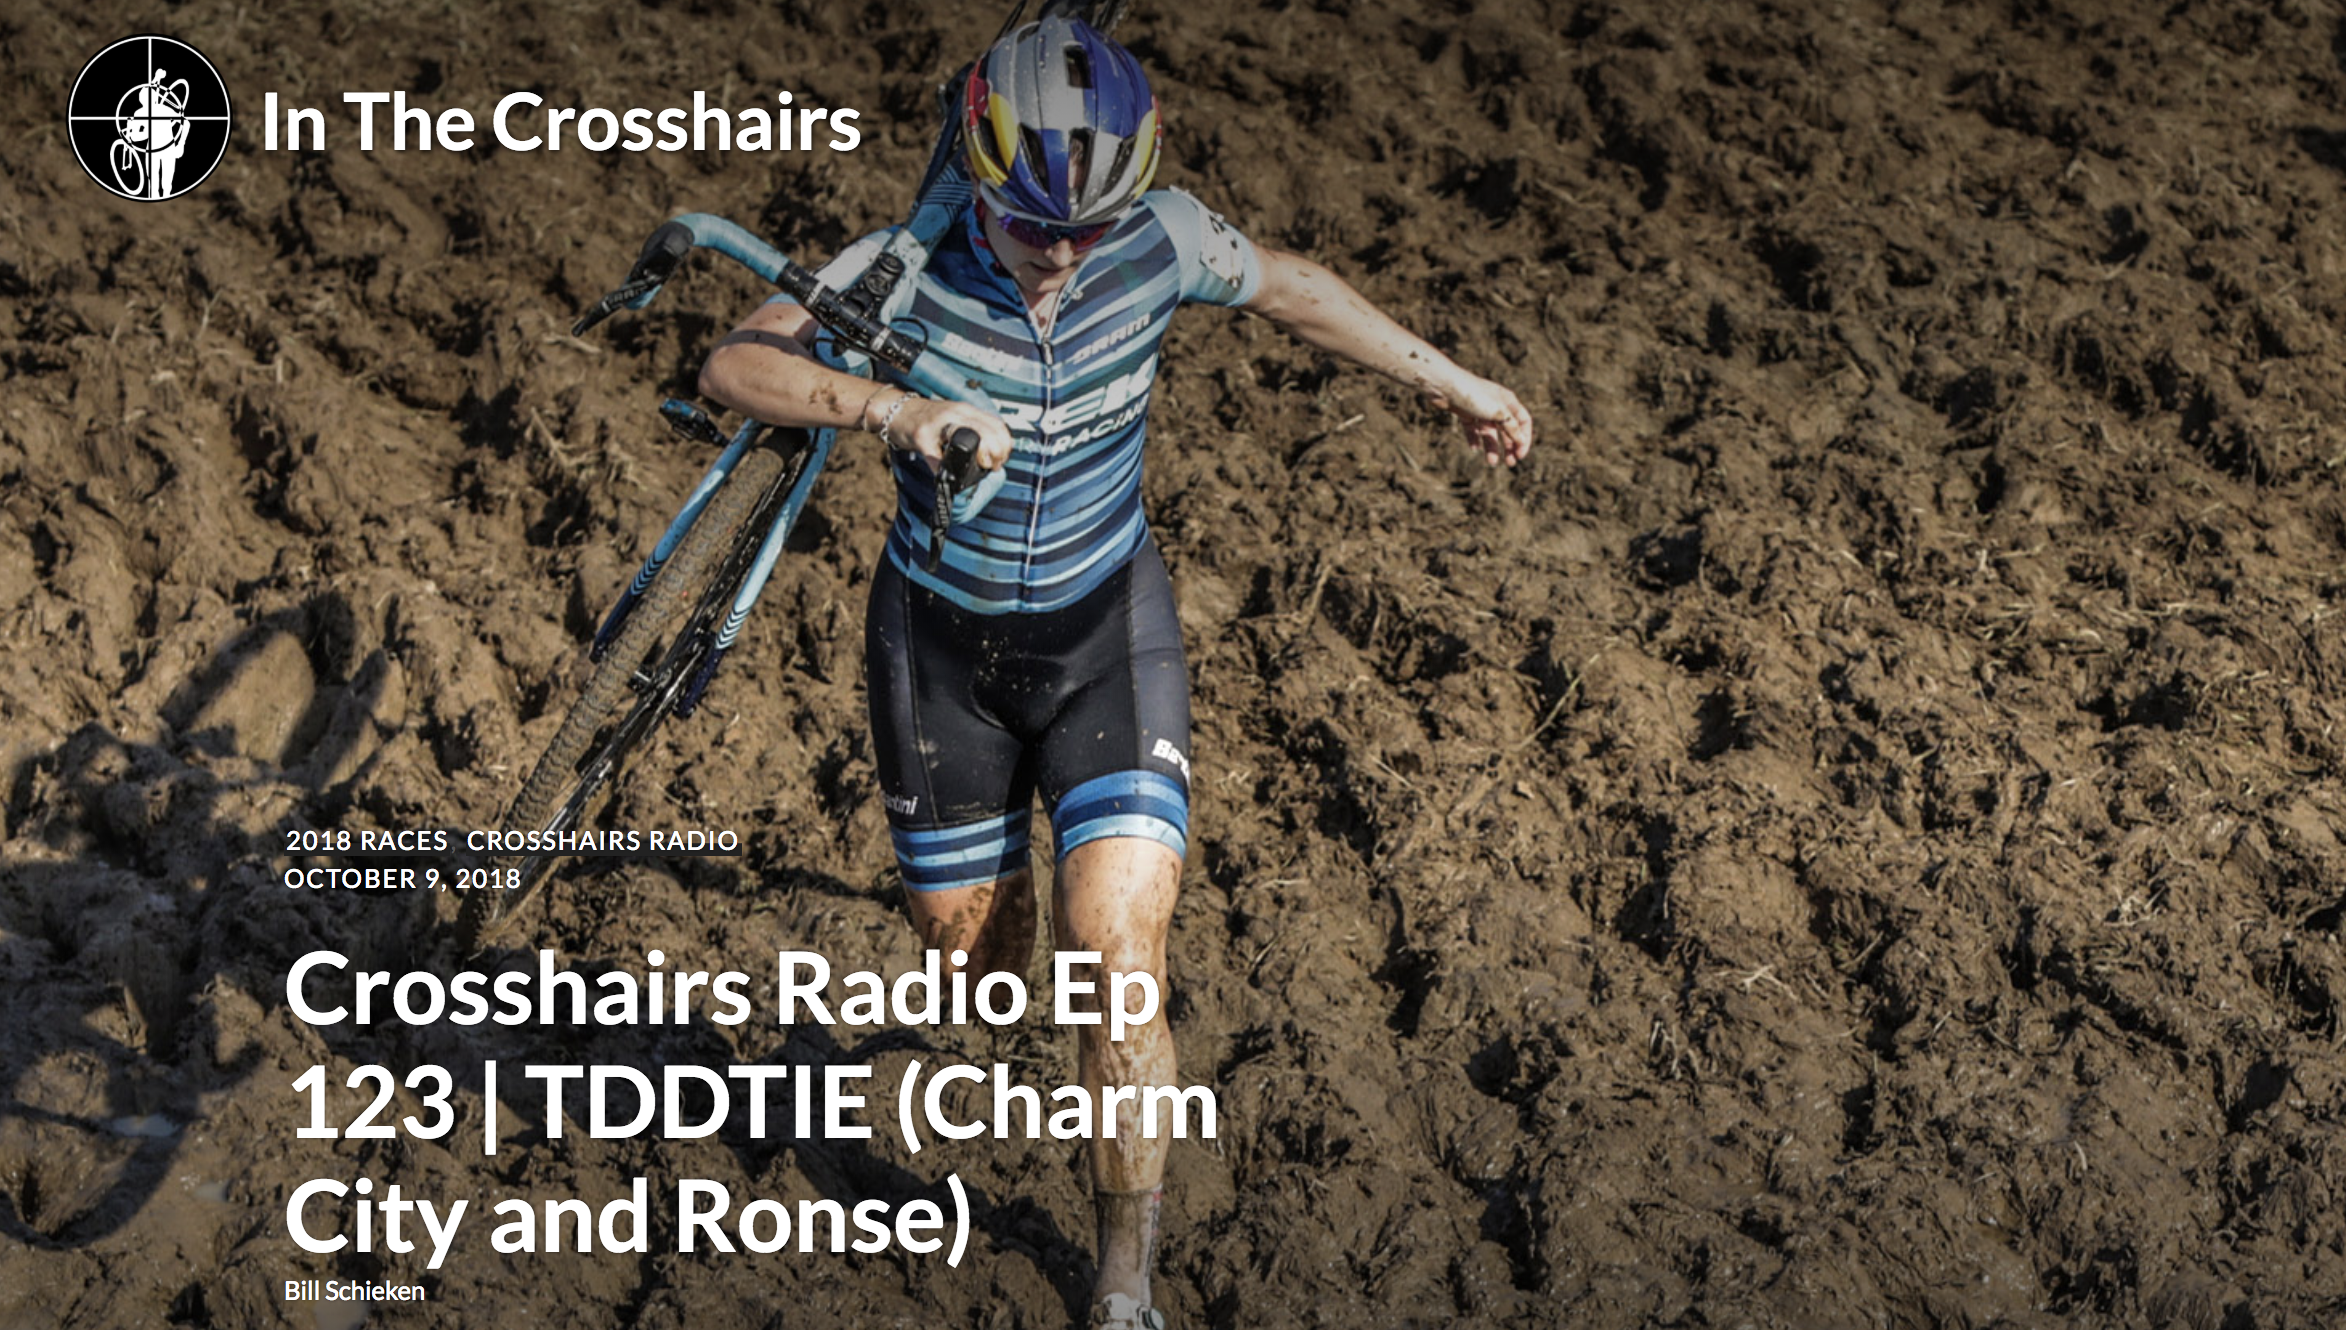 Crosshairs Radio Ep 123 | TDDTIE (Charm City and Ronse)